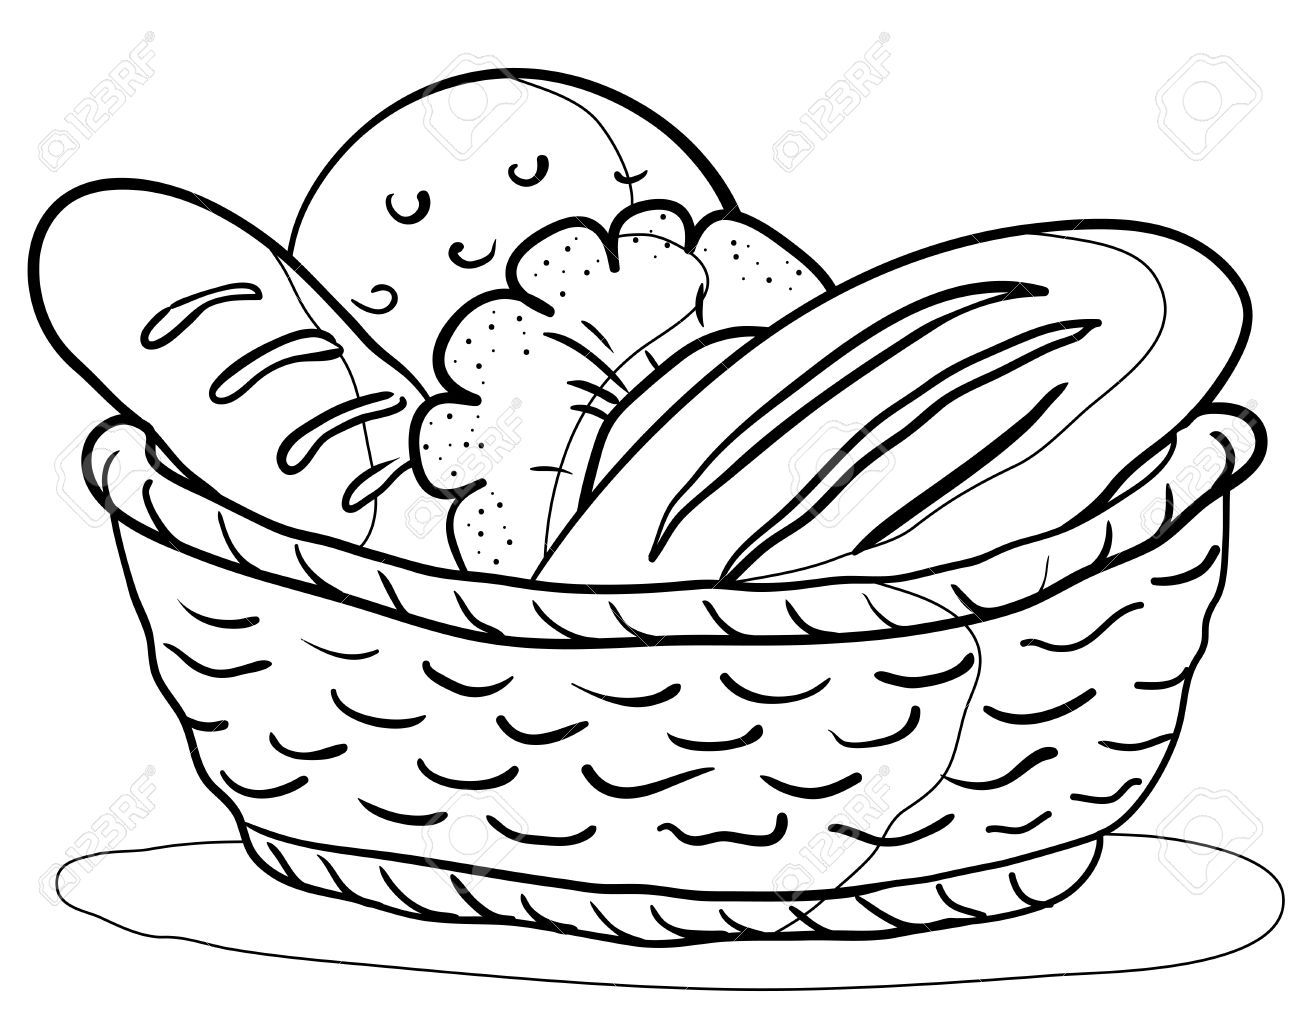 Bread Clipart Tasty 72 Food Coloring Pages Clip Art Coloring Pages For Kids